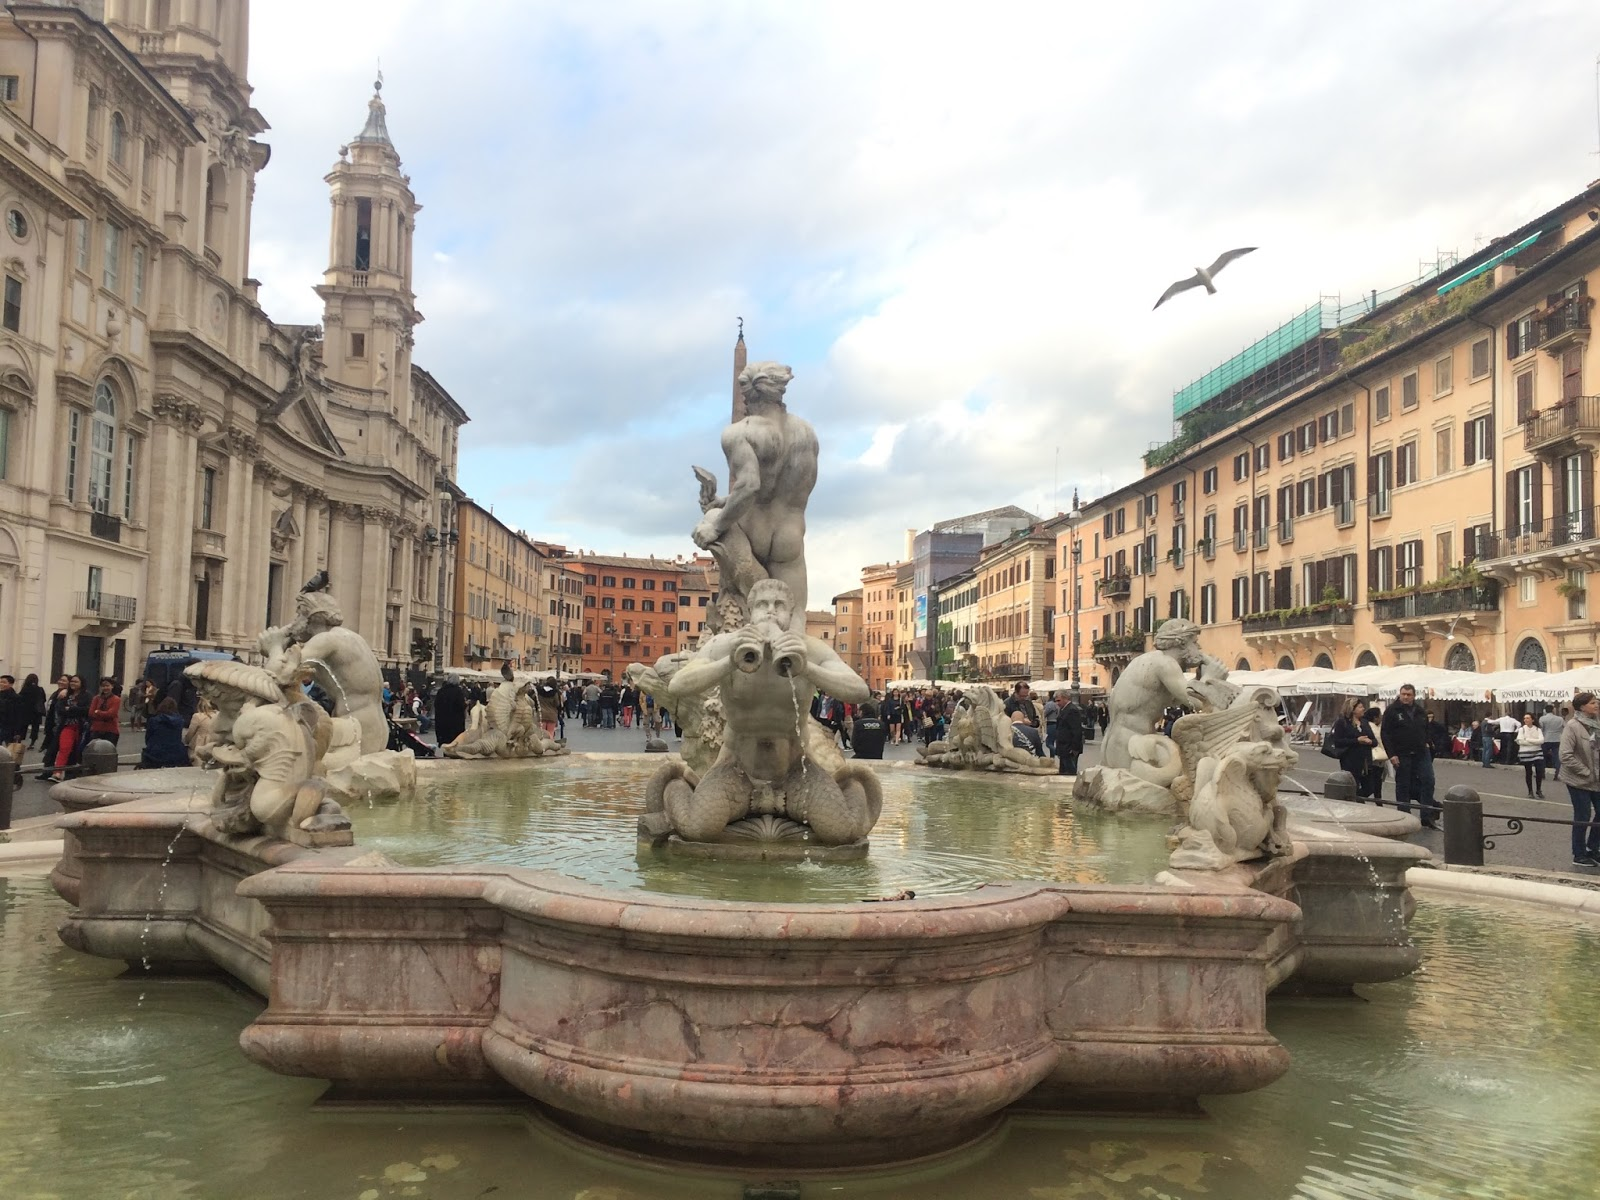 5 star hotels in rome near piazza navona webcam